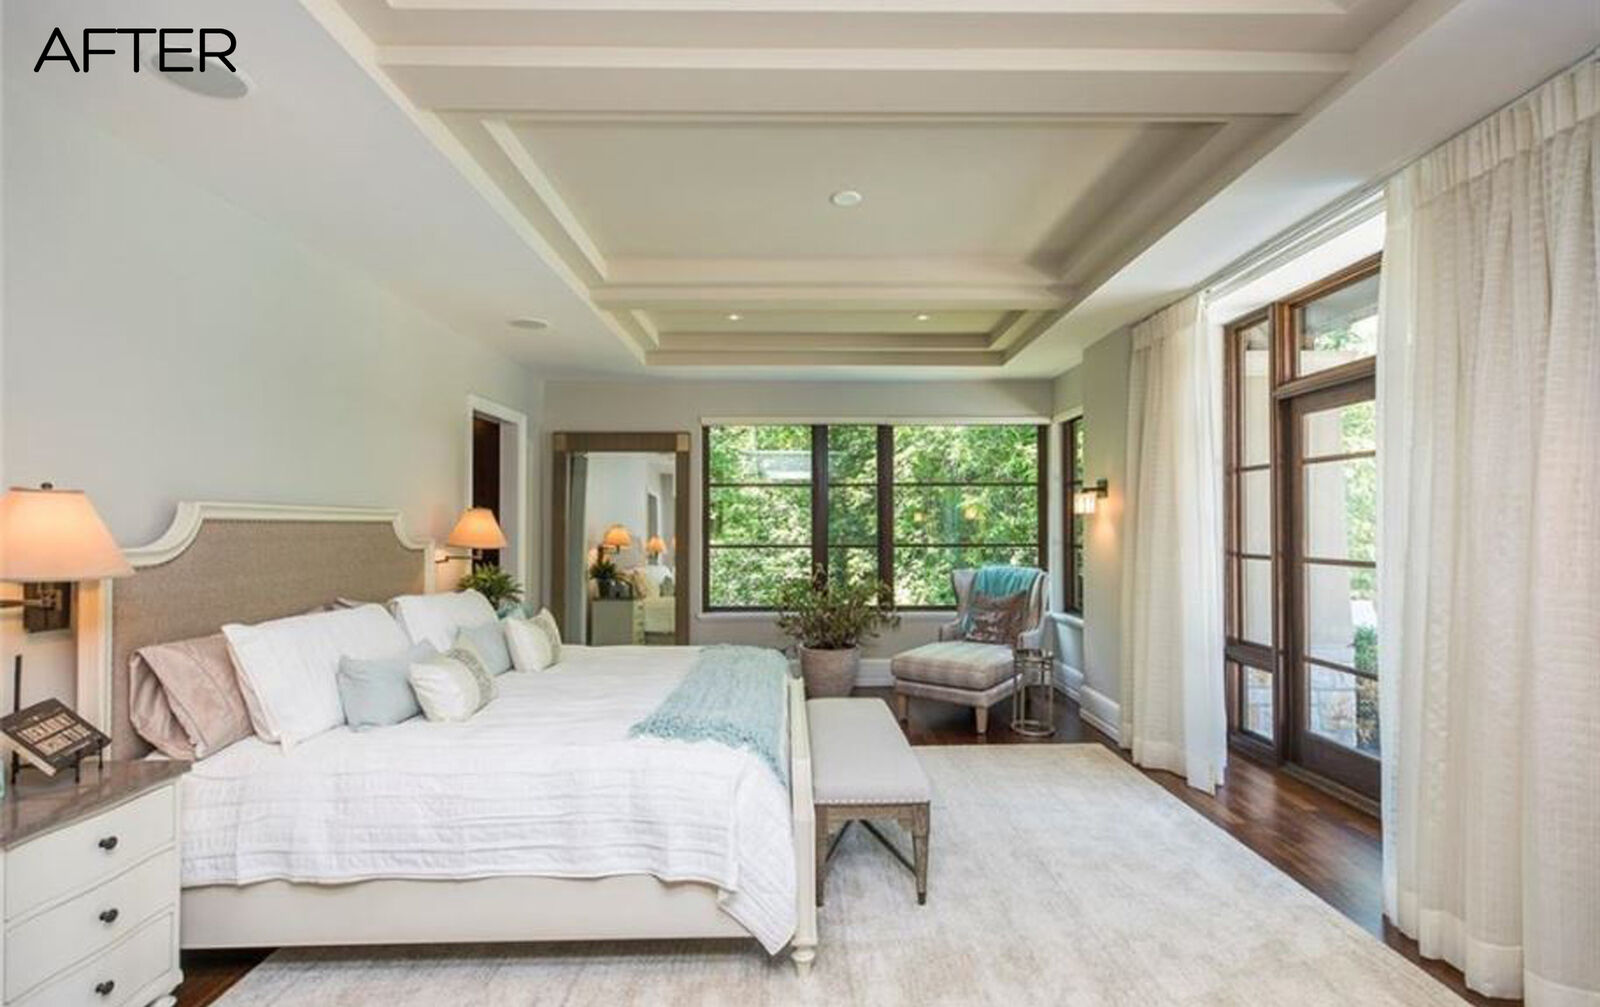 elegant master bedroom redesign with mint sage green accents, chaise loung, large windows and bedside sconces